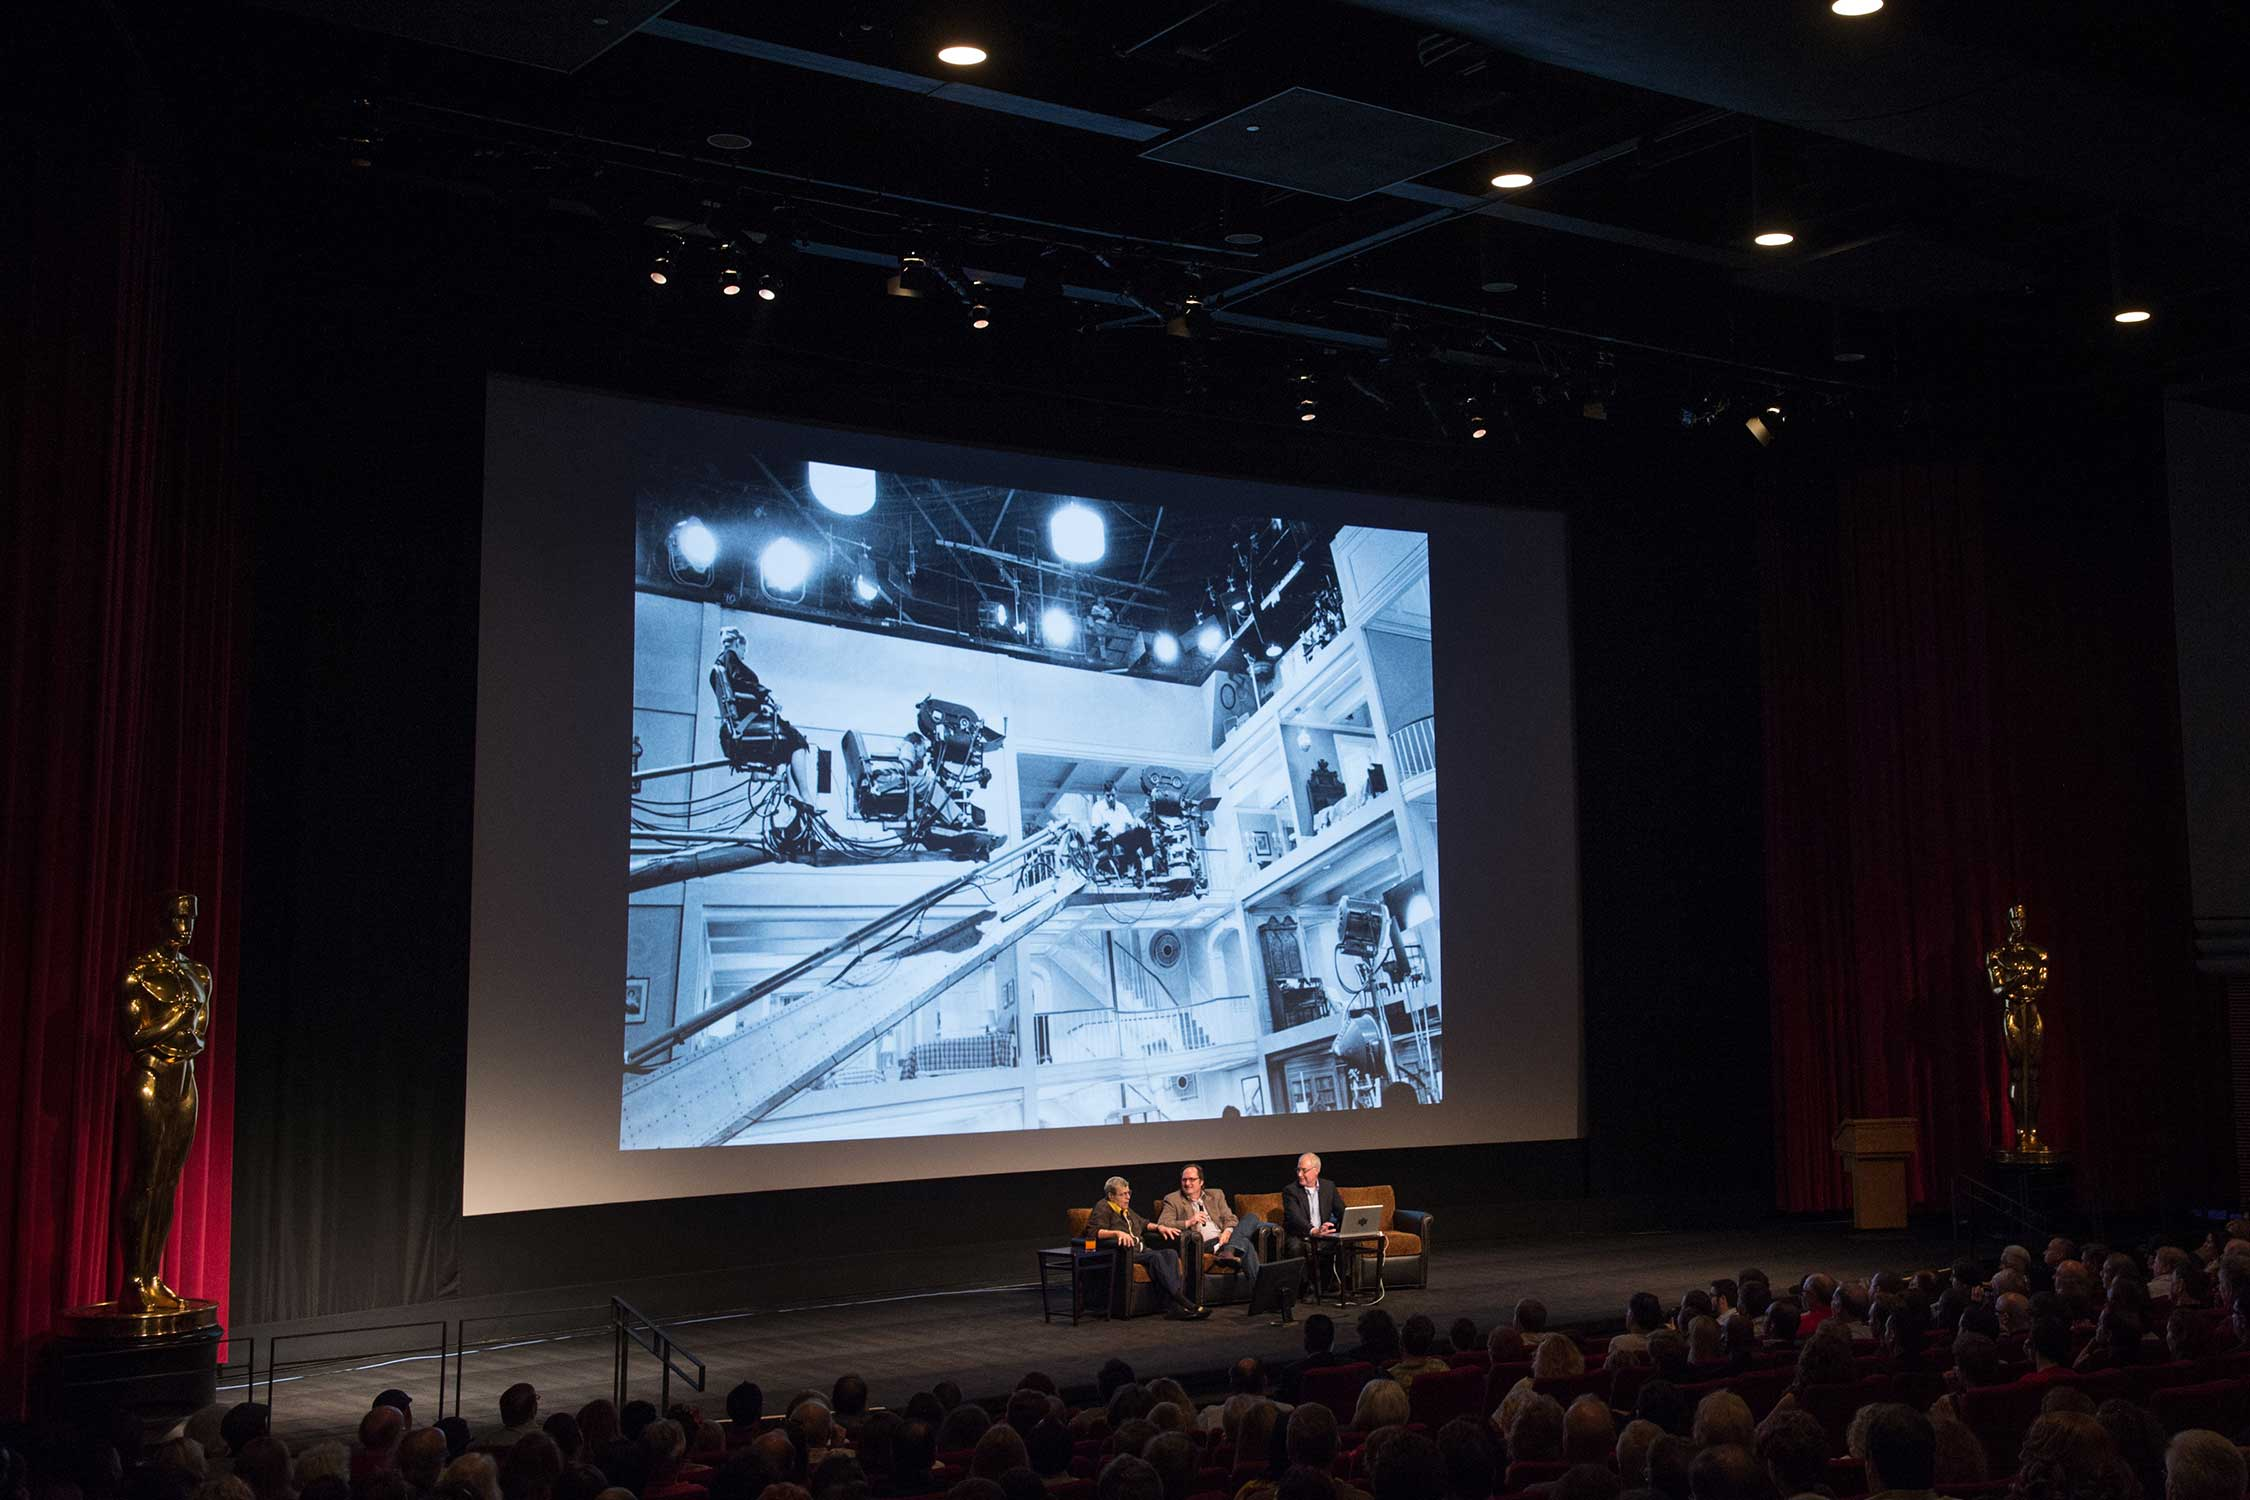 Jerry Lewis delivers laughs and much more at the Academy